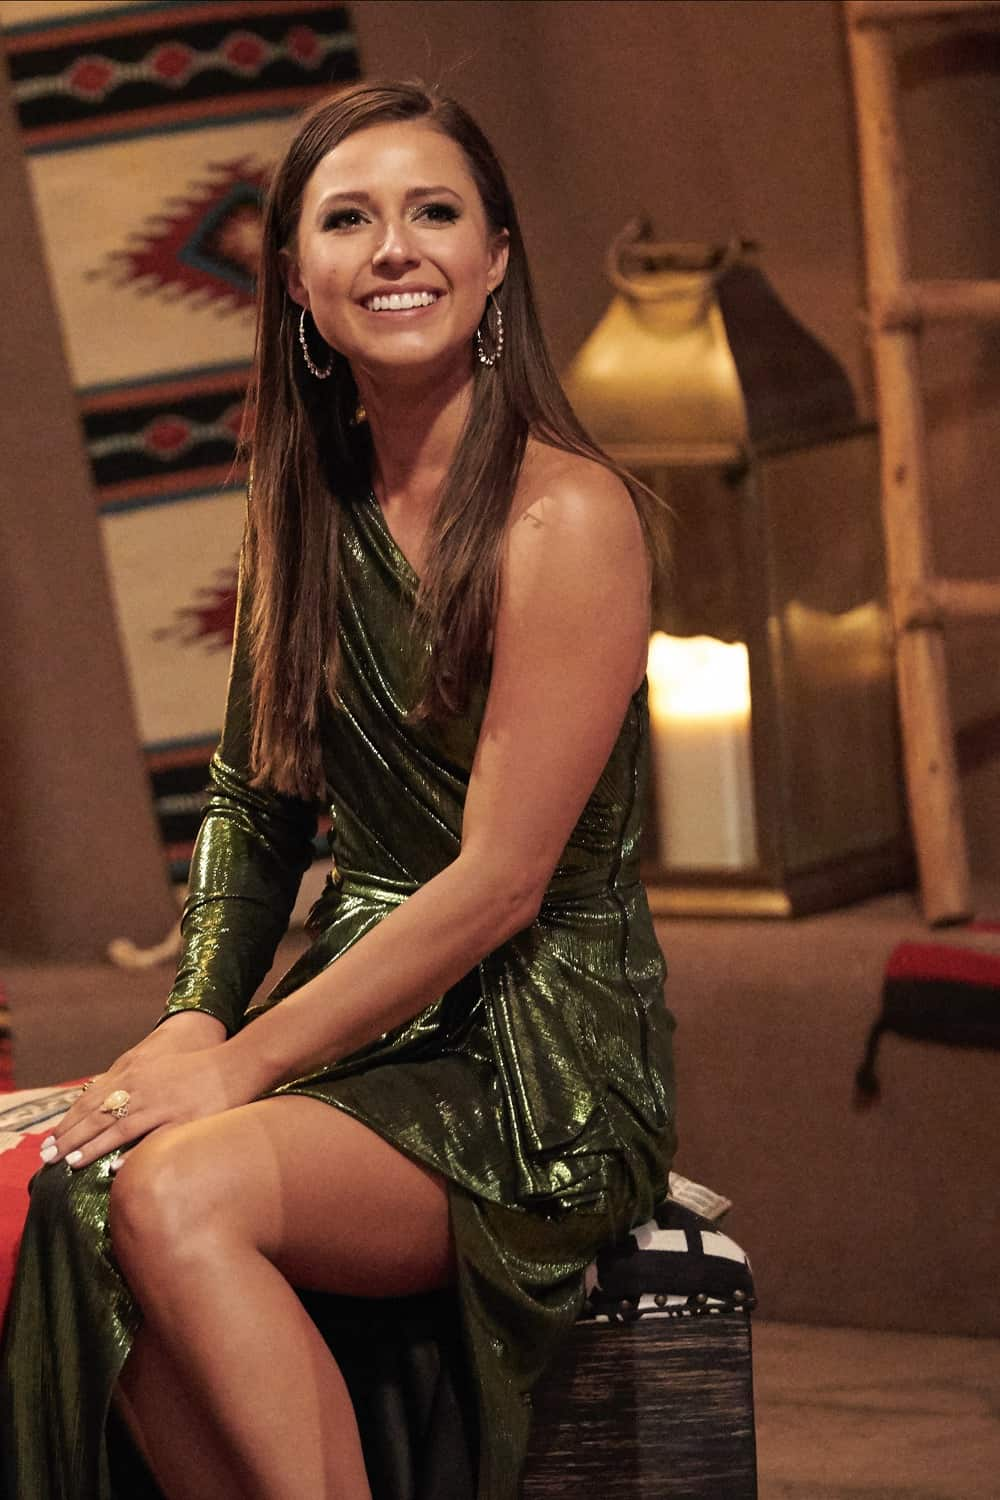 """THE BACHELORETTE SEASON 17 Episode 3 - """"1703"""" – Picking up during a heated cocktail party, Katie reminds the men that anyone not here for the right reasons can see themselves out. On the group date, former Bachelor Nick Viall helps the men share some of their personal stories. Moved by their honesty, Katie courageously opens up about her own story in a heart-wrenching moment. Later, Katie literally flips head over heels for her one-on-one date with Michael A., who opens up with a deeply heartfelt story of how he decided to follow his heart to New Mexico, and drama begins to boil over in the house. Is someone still here for the wrong reasons? An all-new """"The Bachelorette"""" airs MONDAY, JUNE 21 (8:00-10:00 p.m. EDT), on ABC. (ABC/Craig Sjodin) KATIE THURSTON"""